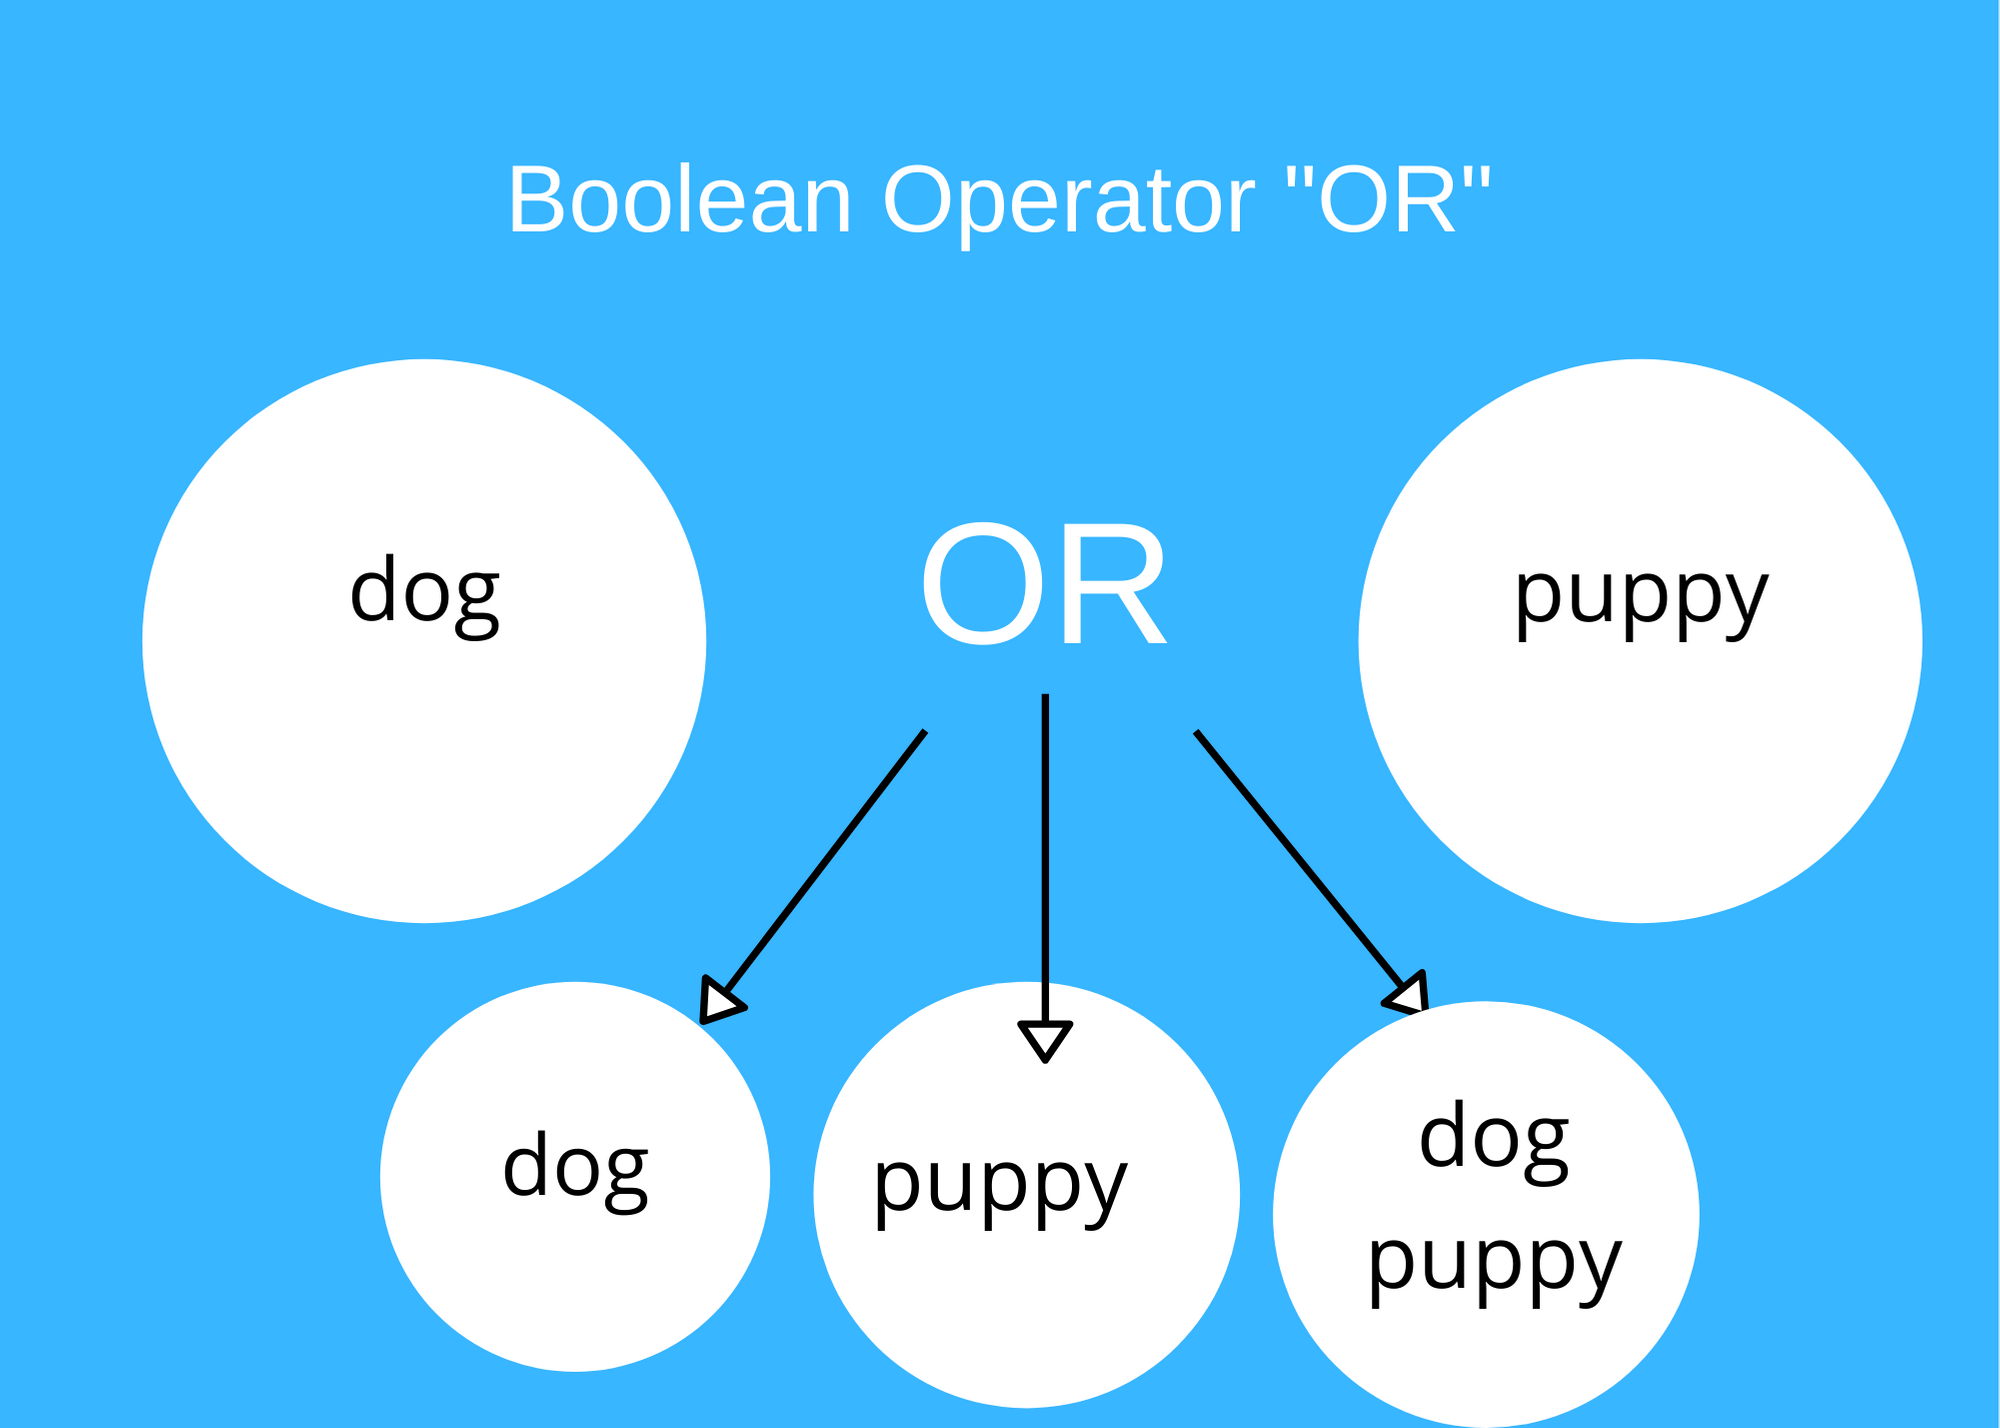 Graphic shows that if you search for dog OR puppy your results will have items with both or either term.